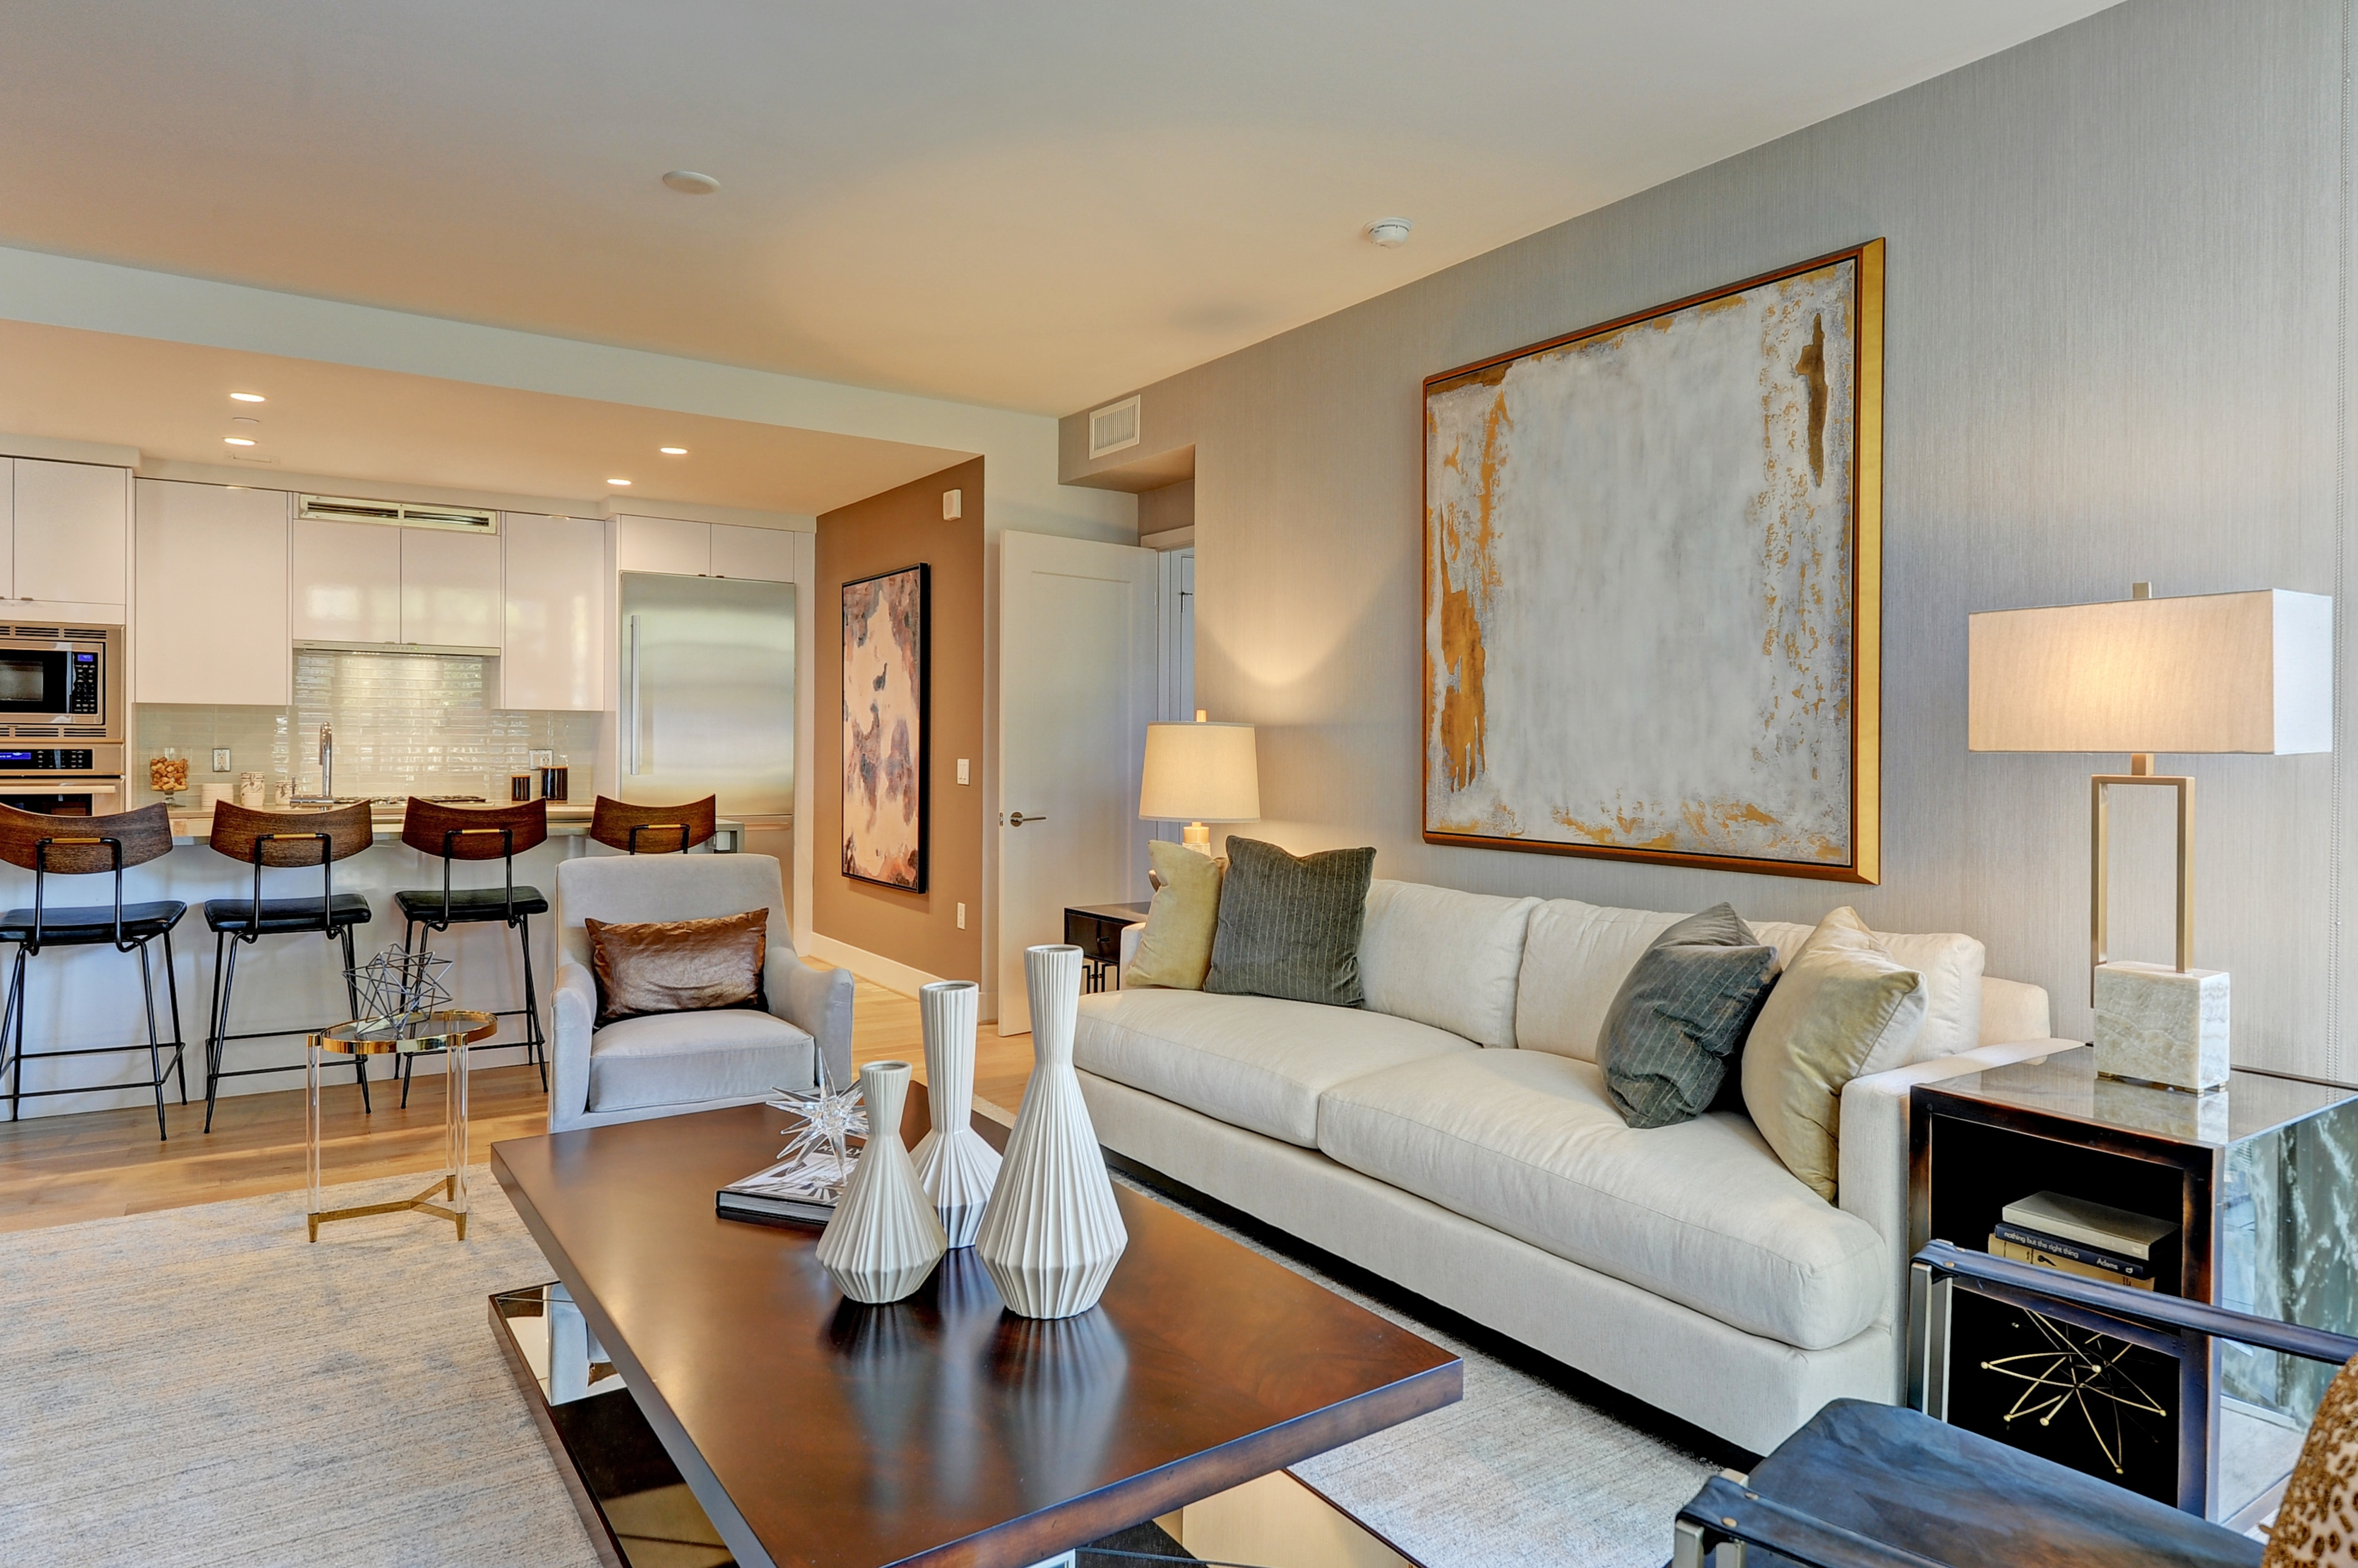 Furnish your D.C. home with the help of these local ... on national home services, national home furnishings, national baseball, national transportation, national fish, national home design, national weather, national home health,